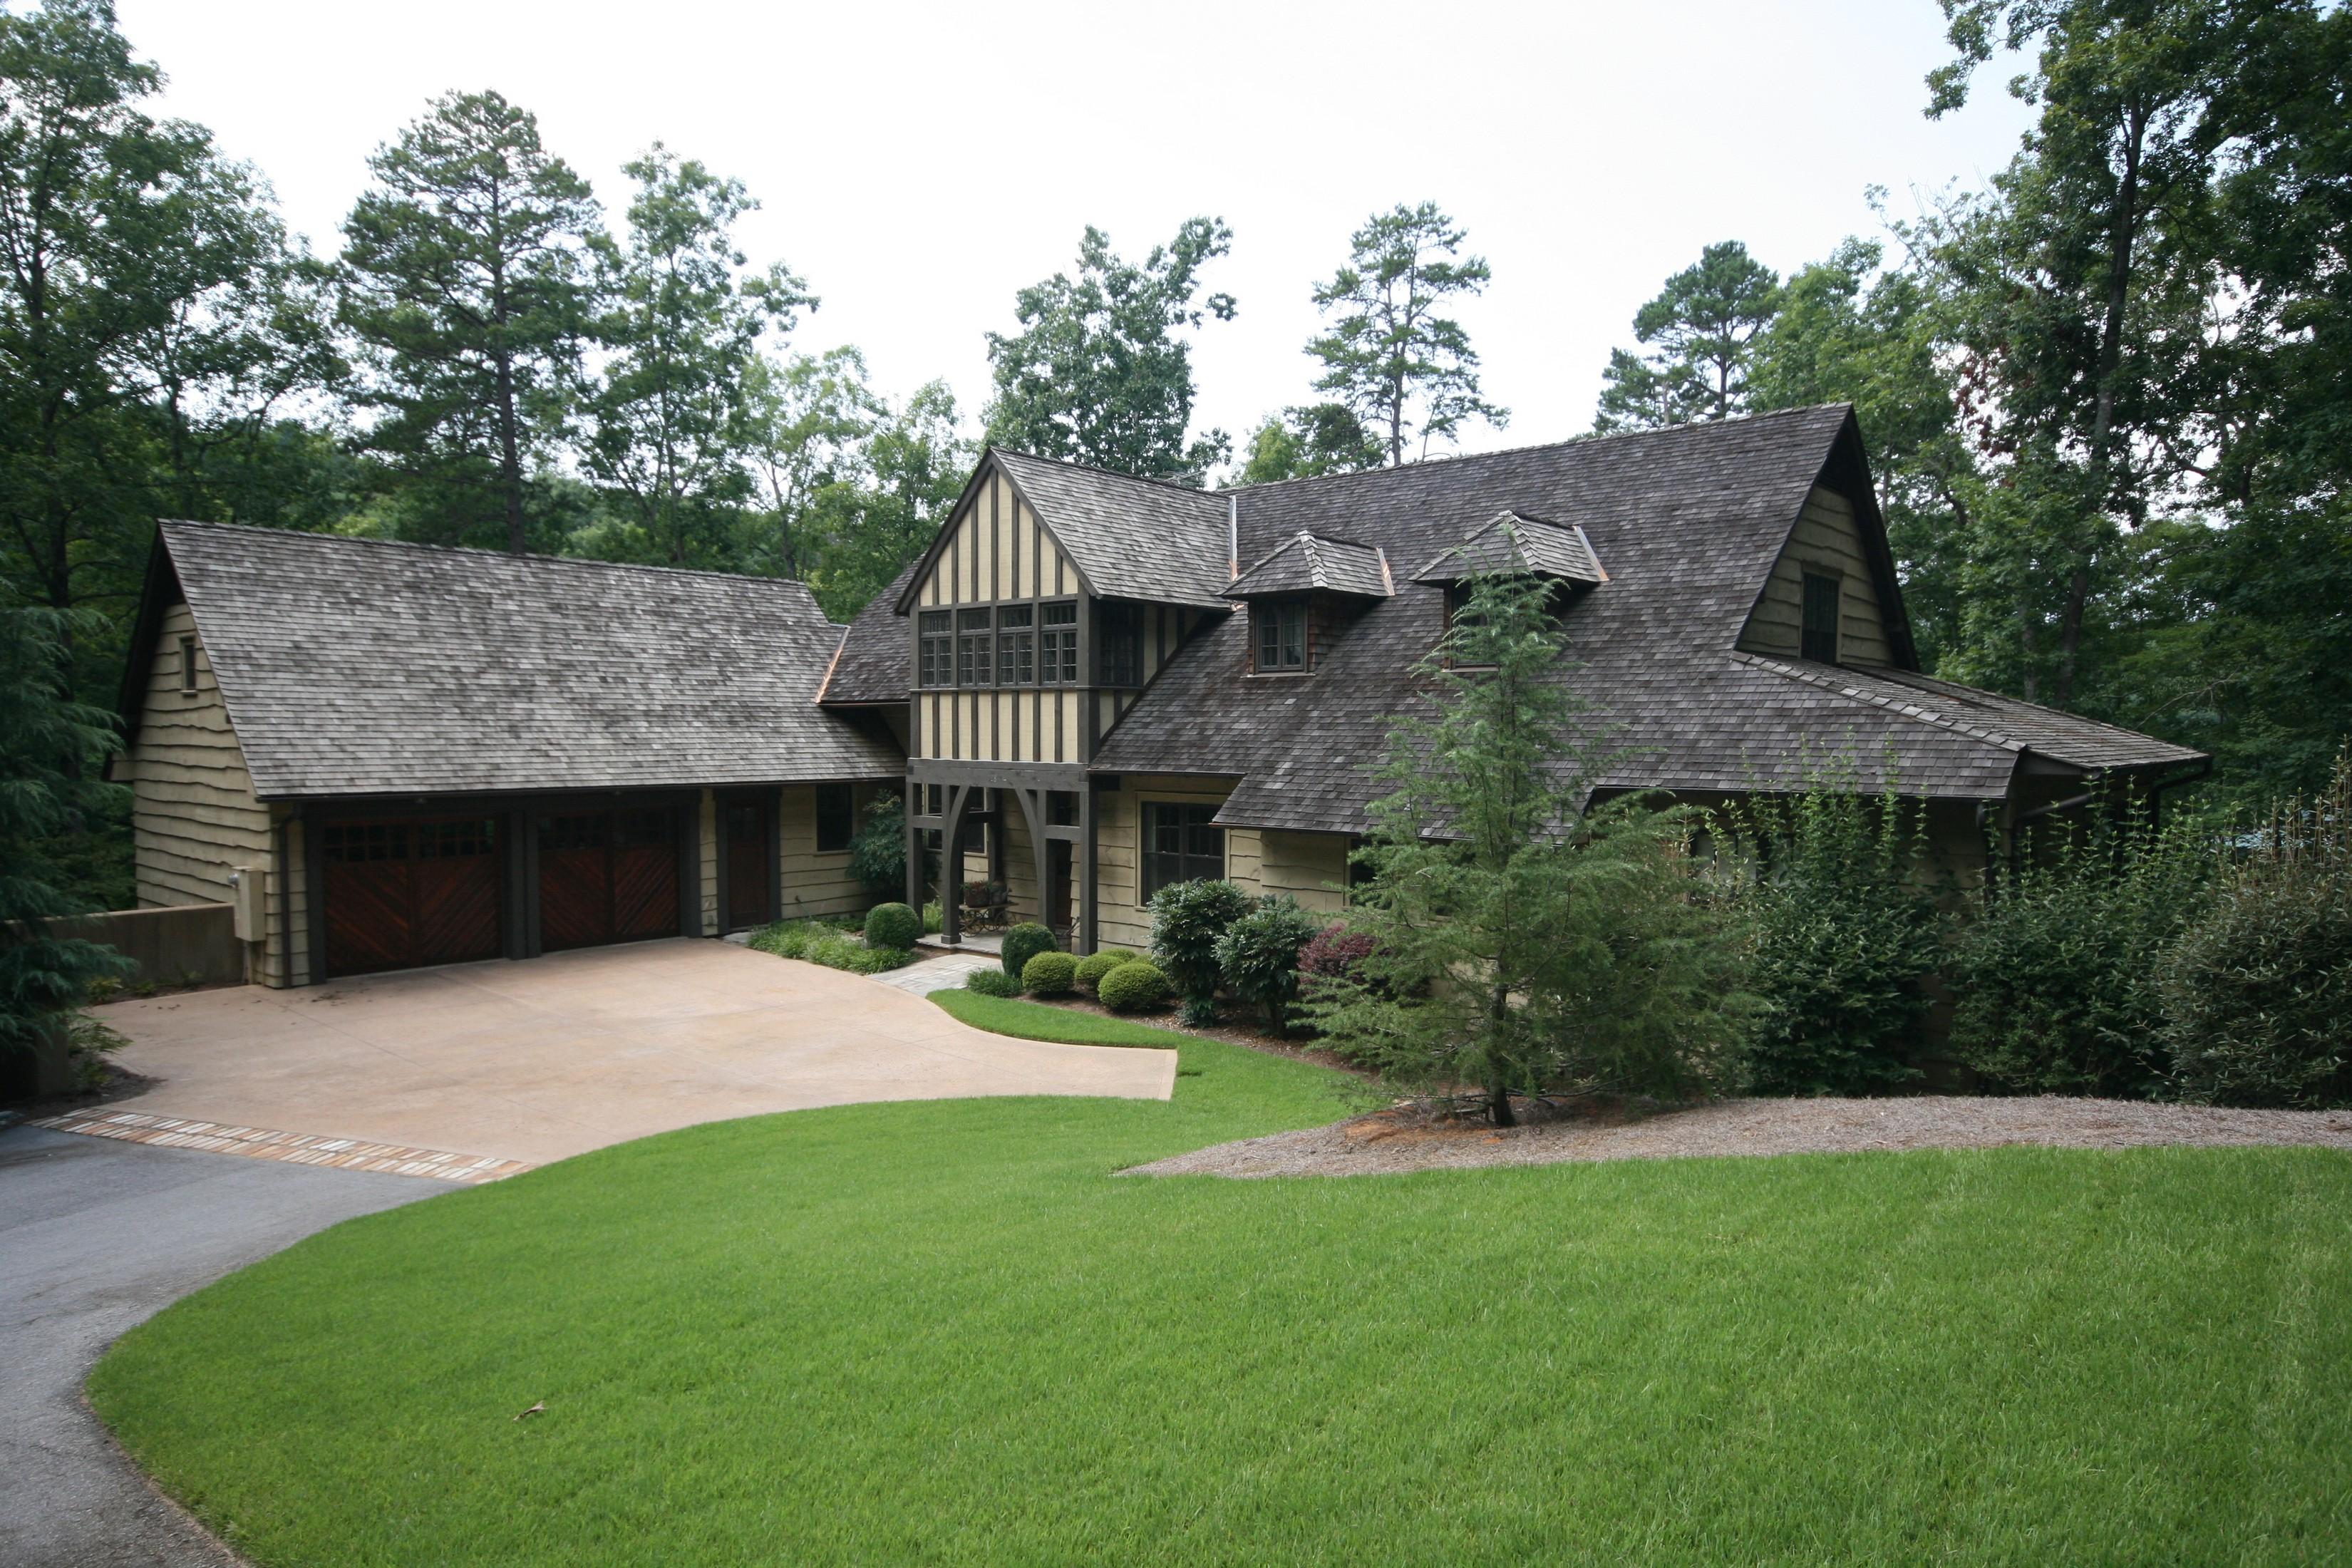 Single Family Home for Sale at Casual Elegance & Architectural Charm 128 Big Creek Trail The Cliffs At Keowee Springs, Six Mile, South Carolina, 29682 United States